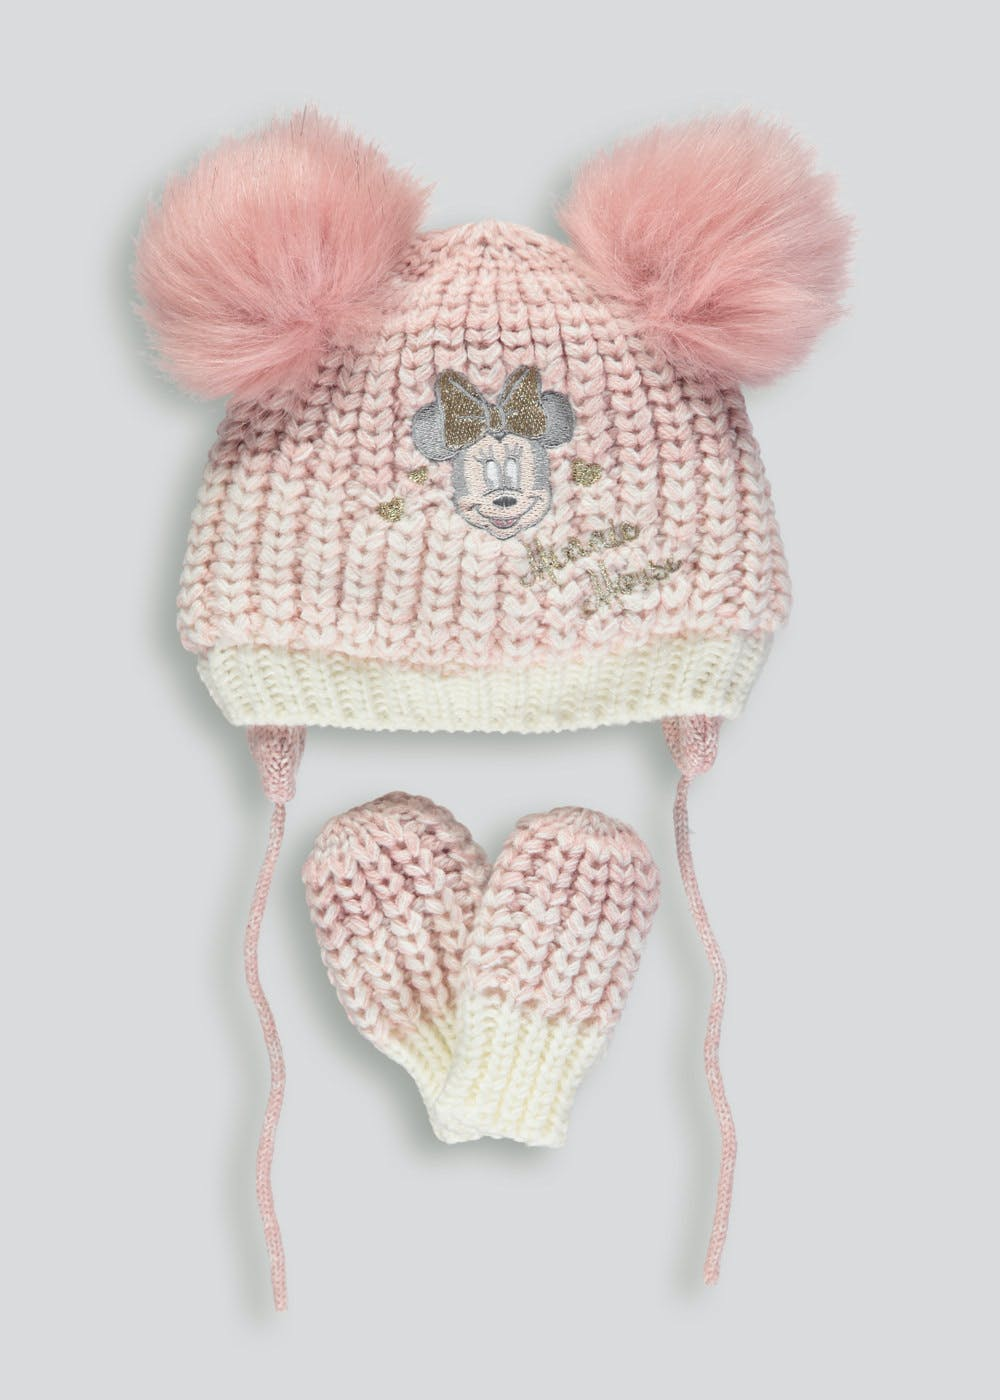 c4ddb9b92adf0 Unisex Disney Minnie Mouse Bobble Hat   Mittens Set (Newborn-23mths)